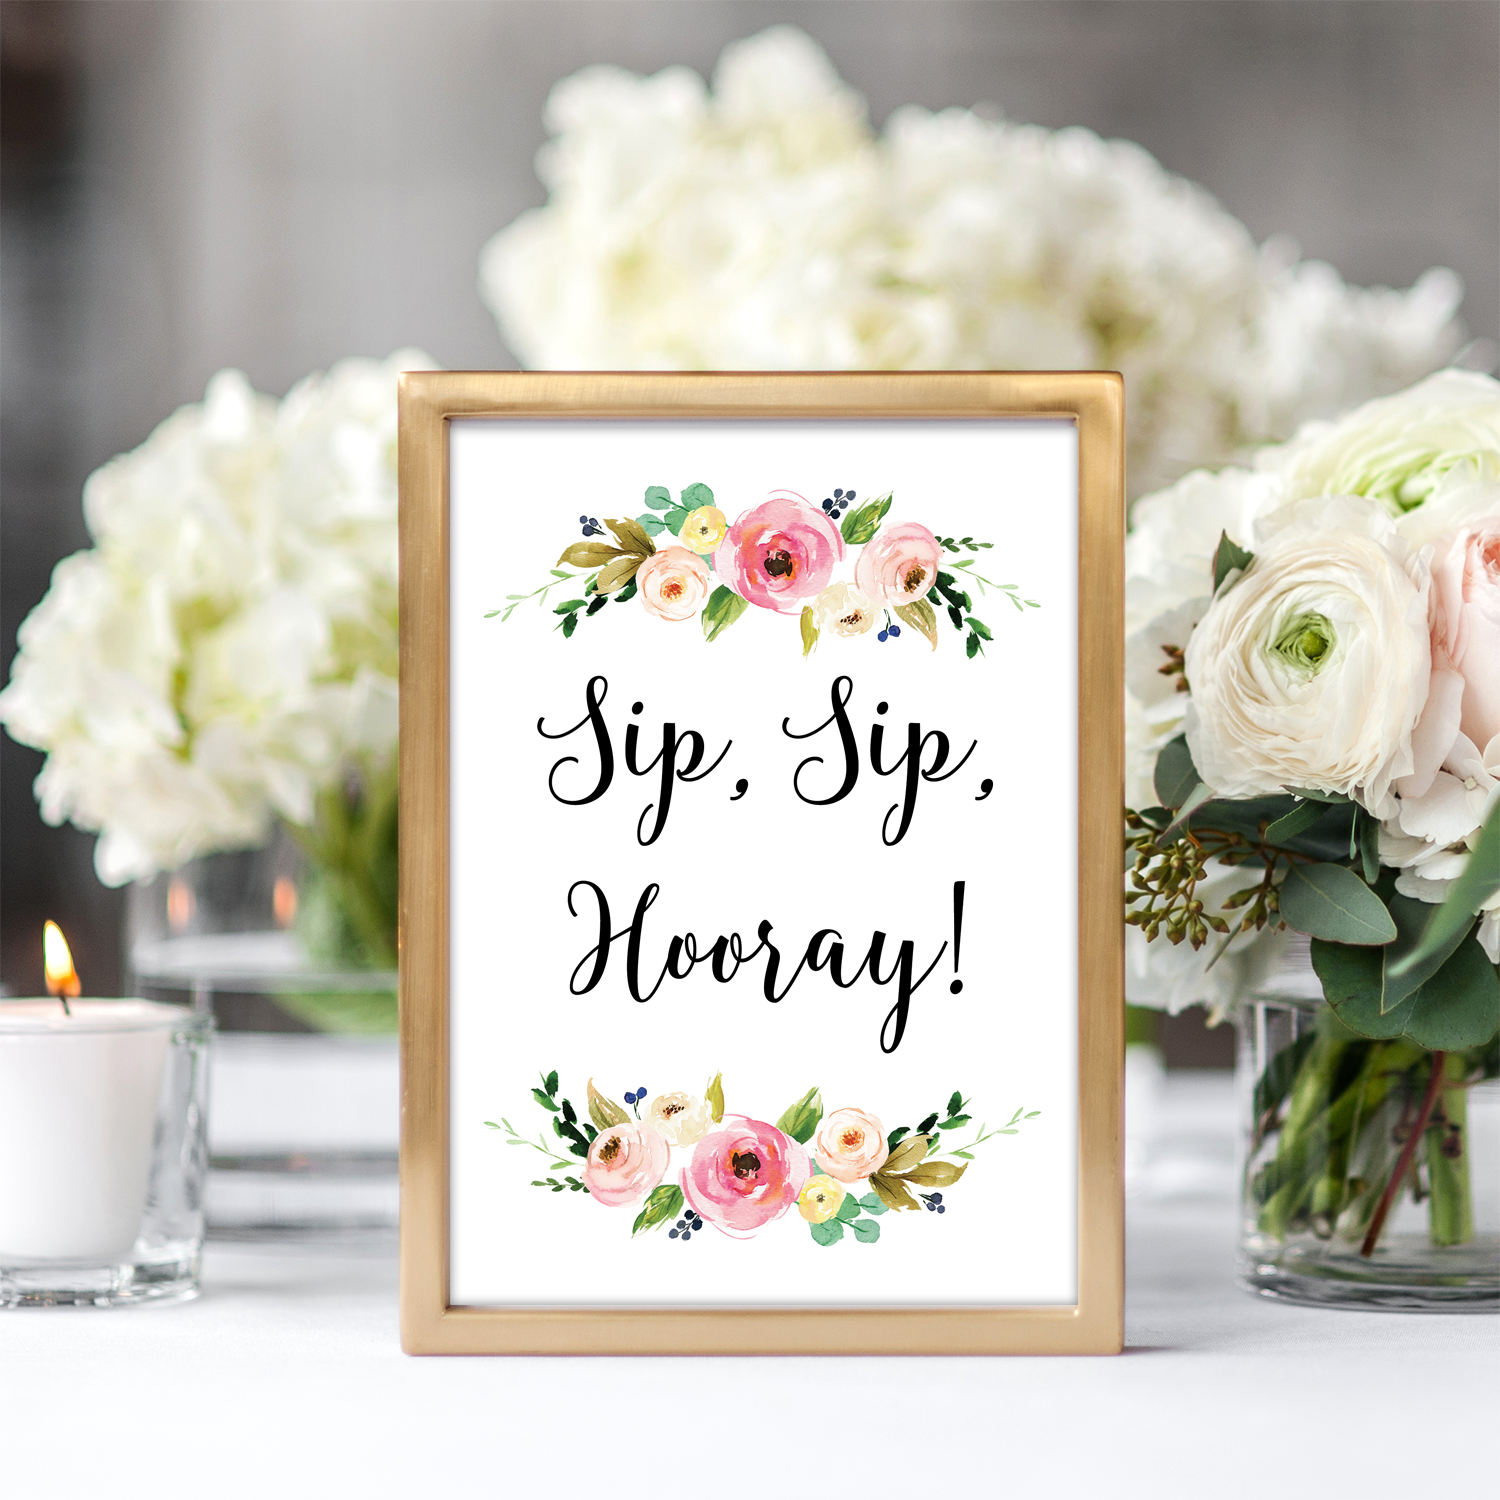 image relating to Sip Sip Hooray Printable named Floral Sip Sip Hooray Printable Signal